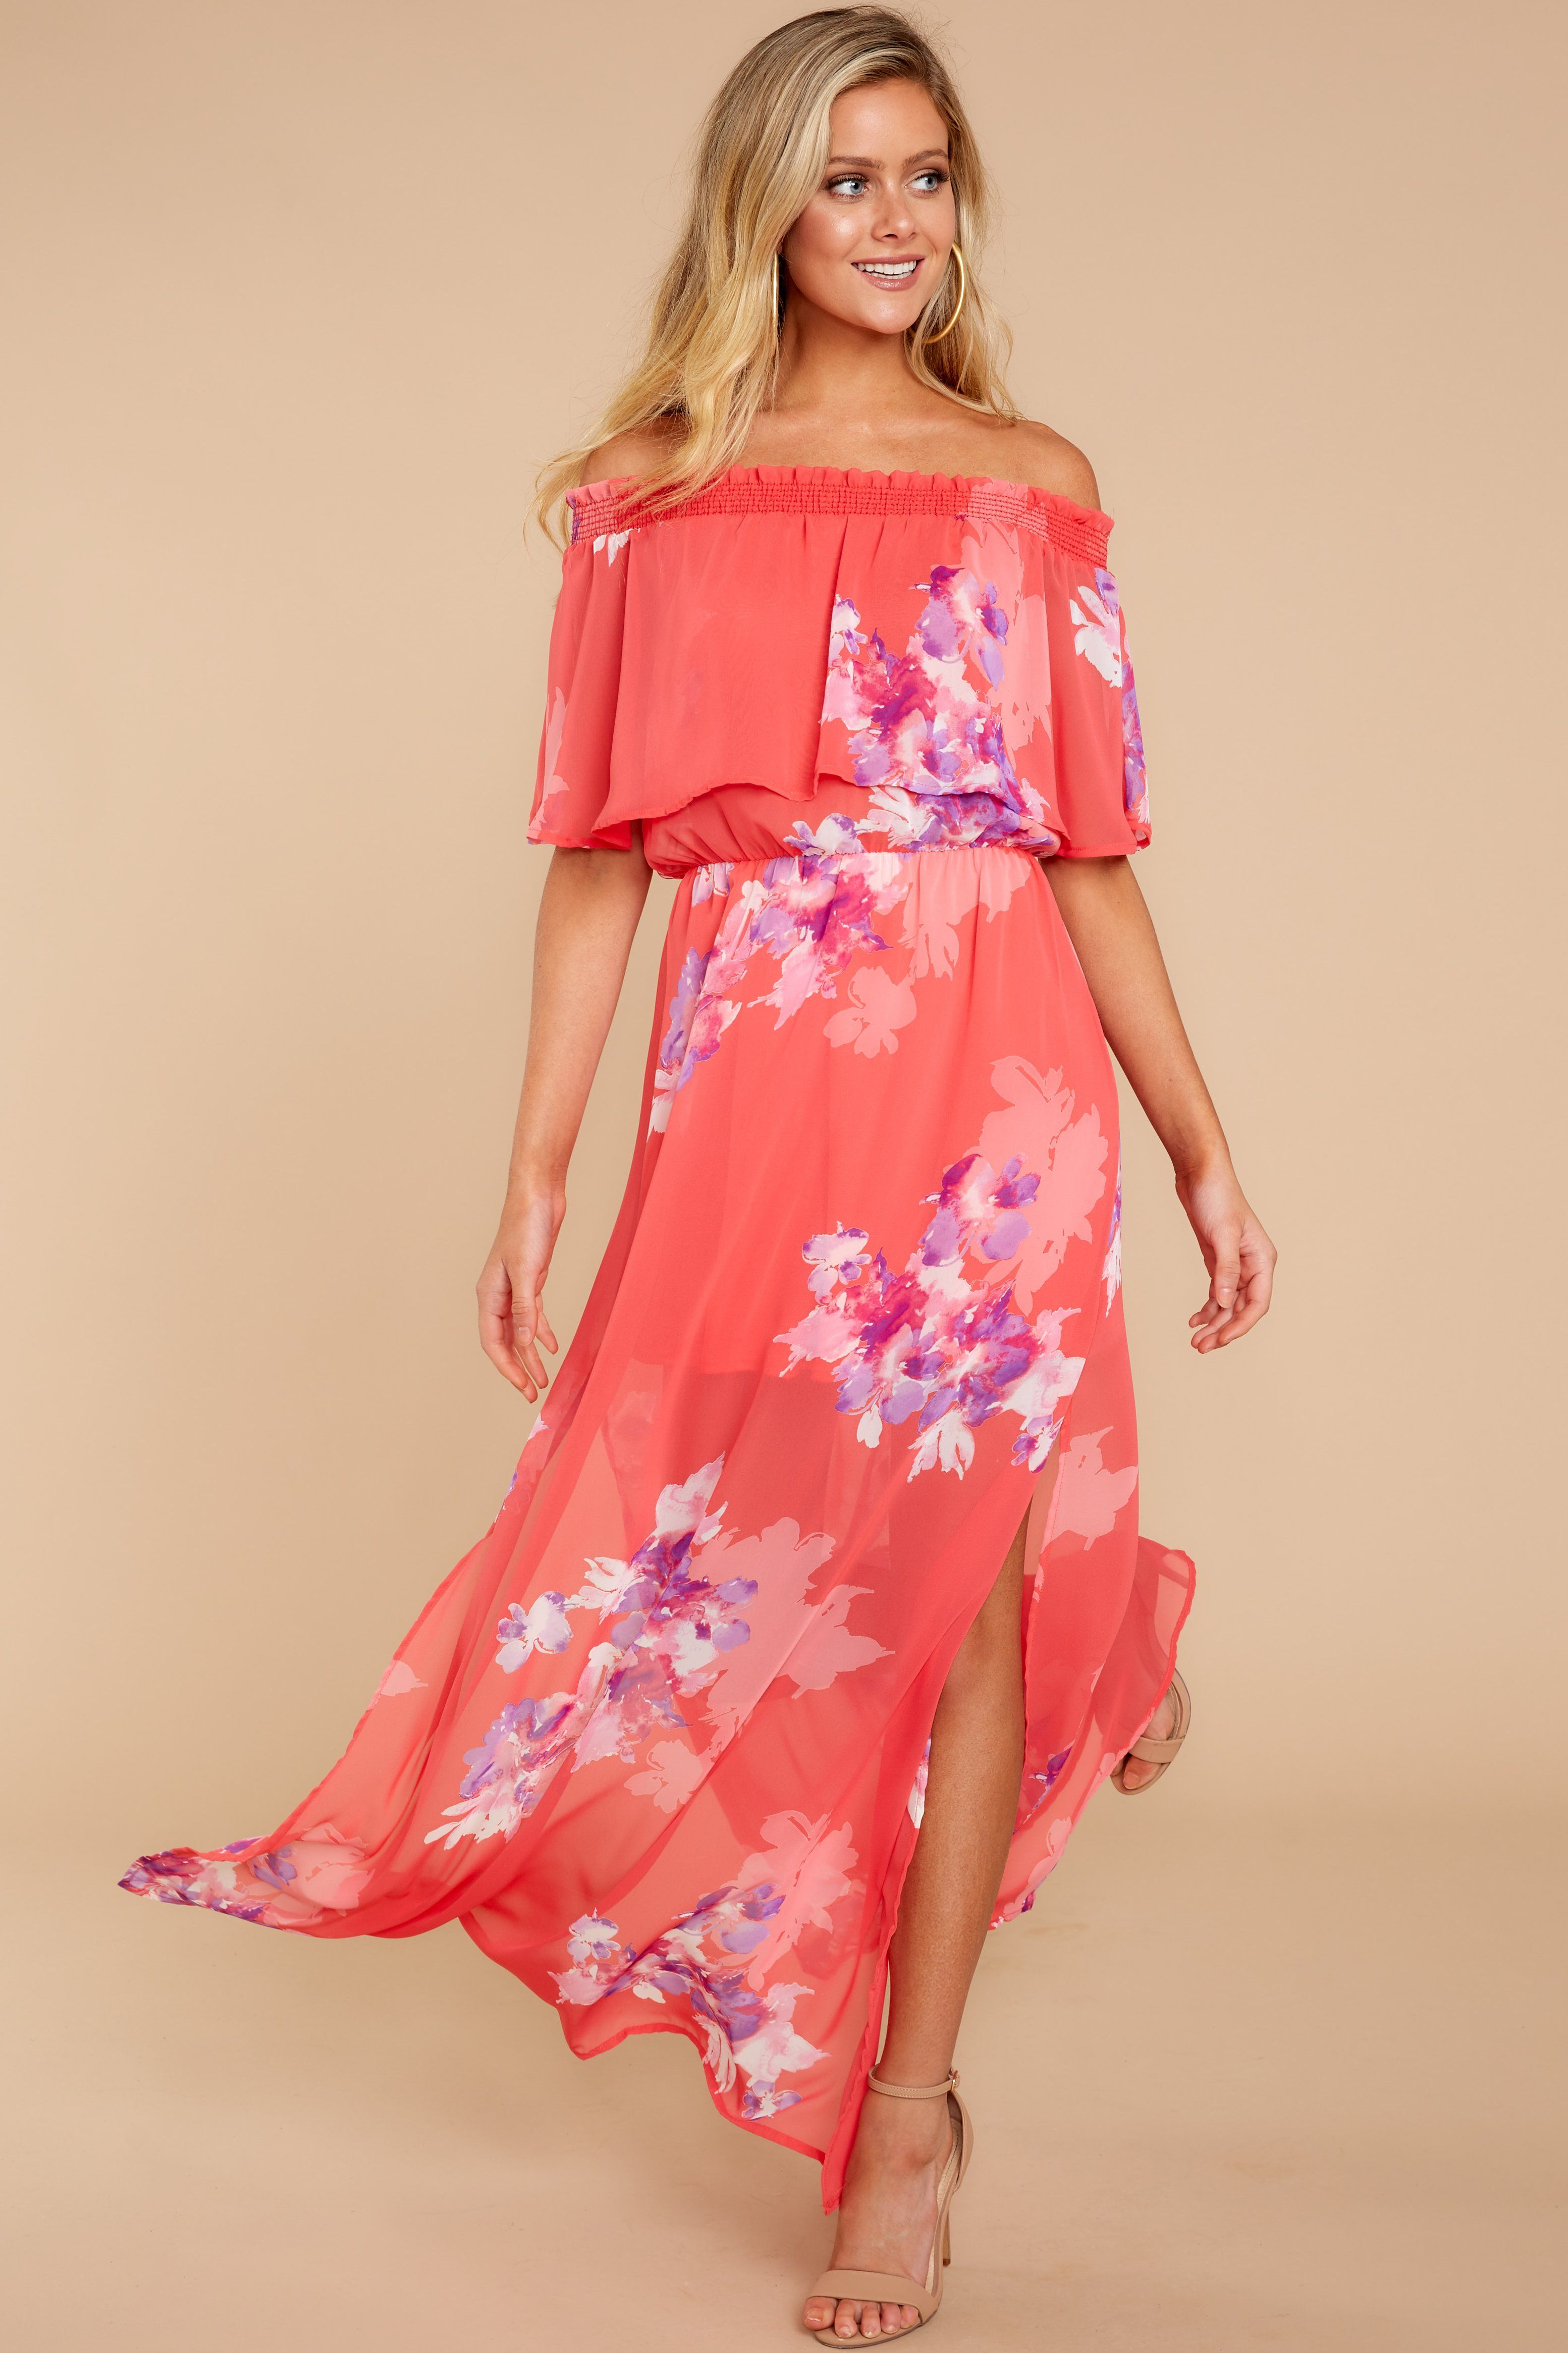 566d5274a7b Trendy Pink Print Maxi Dress - Floral Print Maxi Dress - Dress -  54.00 – Red  Dress Boutique